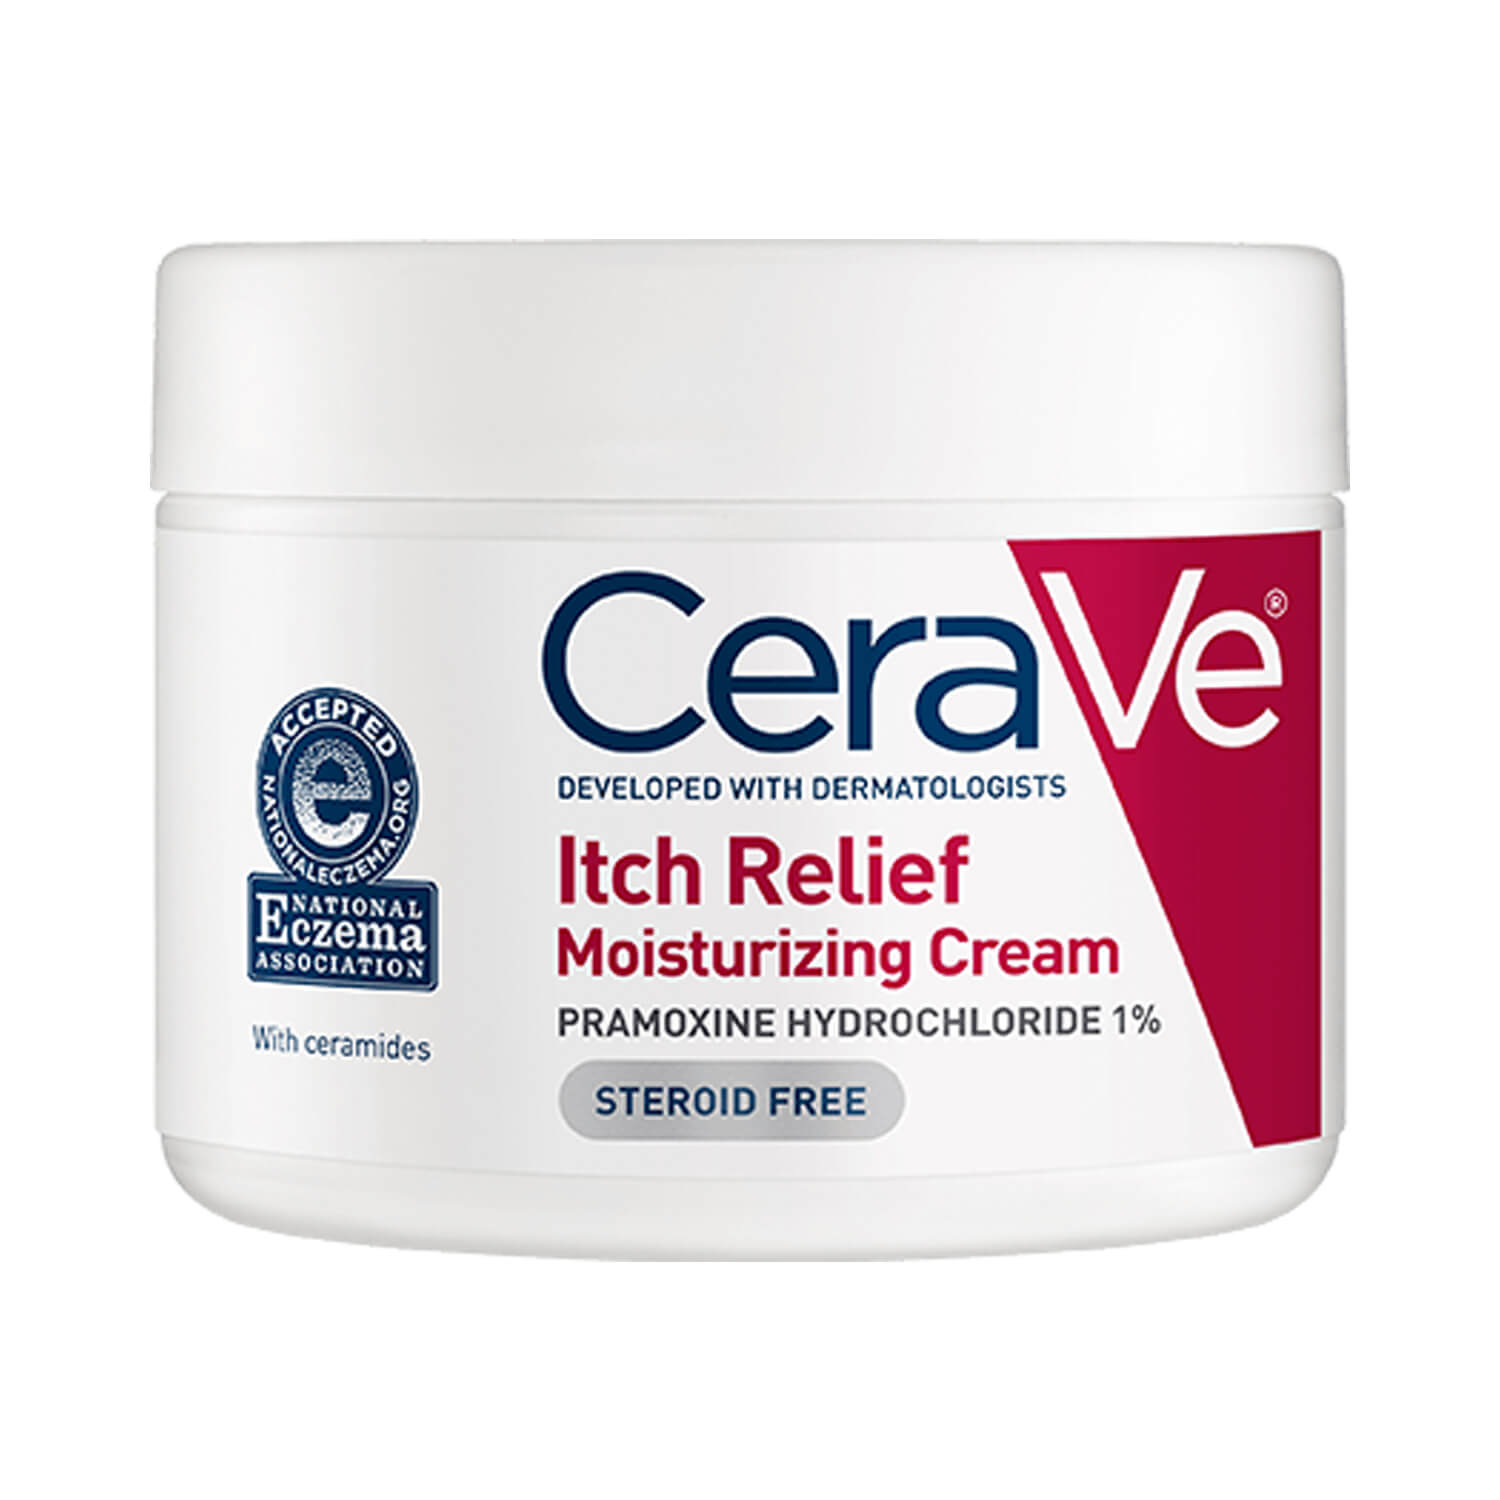 CeraVe Itch Relief Moisturizing Cream 340g